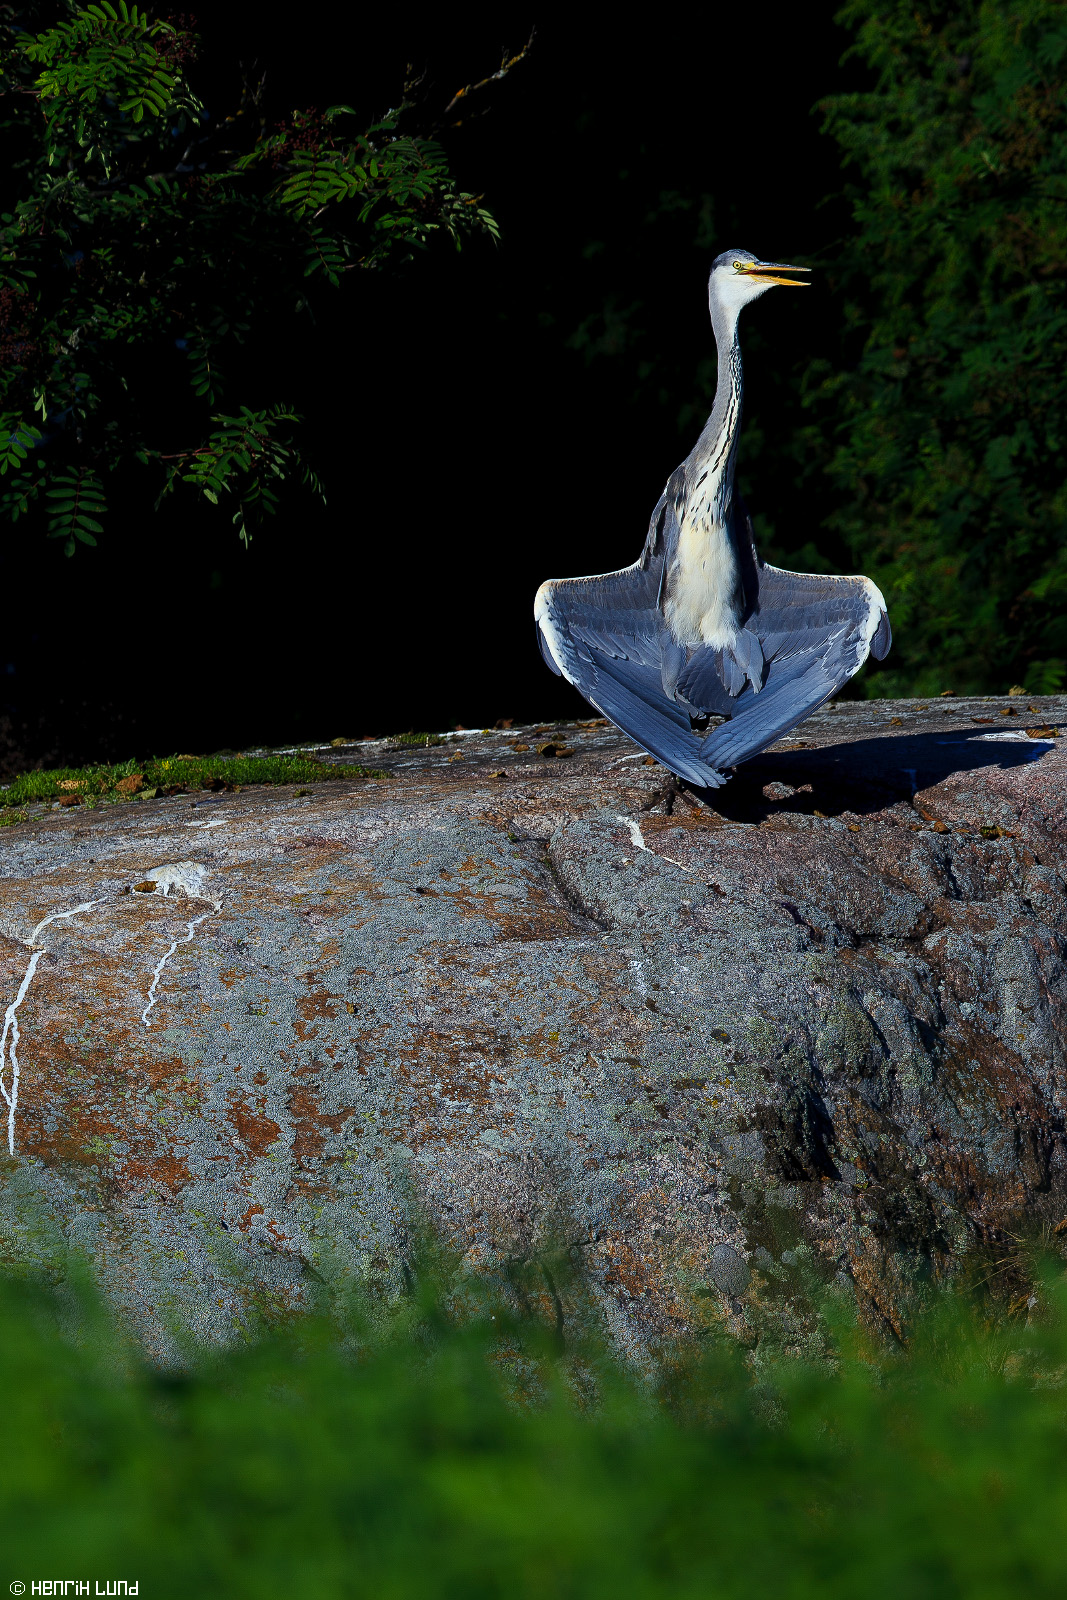 A grey heron drying its wings in the evening sun at Linnarvik, Sarfsalö, Lovisa. Finland. July, 2014.